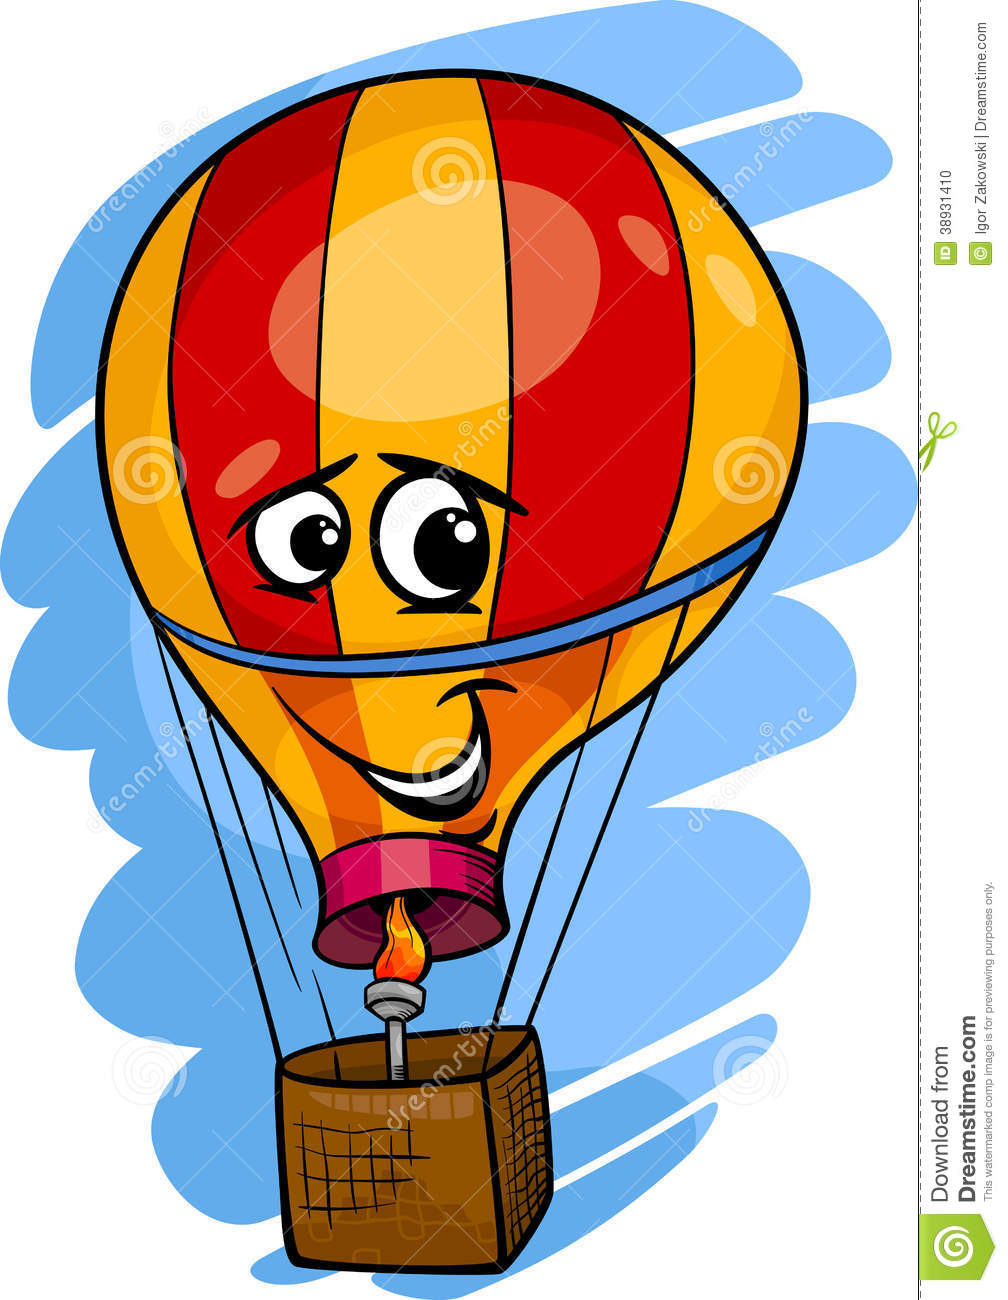 illustrazione del fumetto della mongolfiera illustrazione Deflated Hot Air Balloon Clip Art Deflated Hot Air Balloon Clip Art